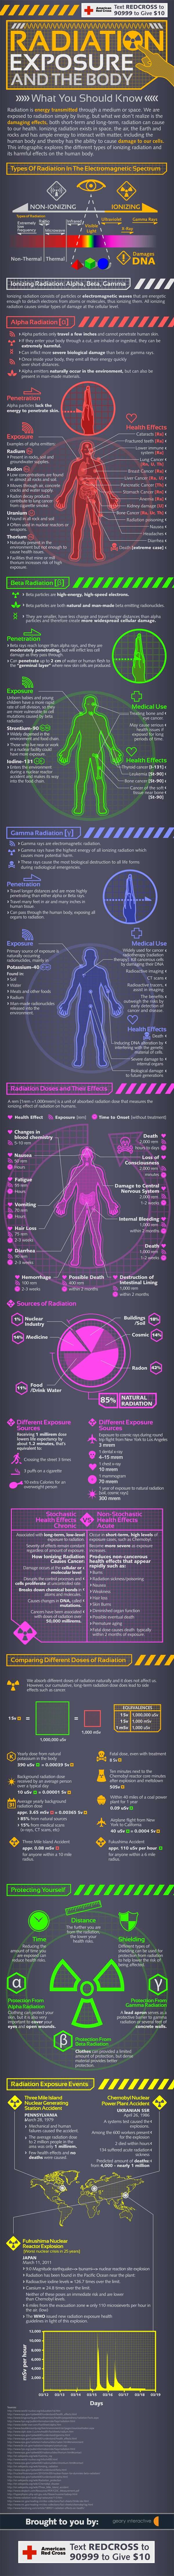 Types Of Radiation, Its Effects And How To Lessen Risks Of Exposure [INFOGRAPHIC]